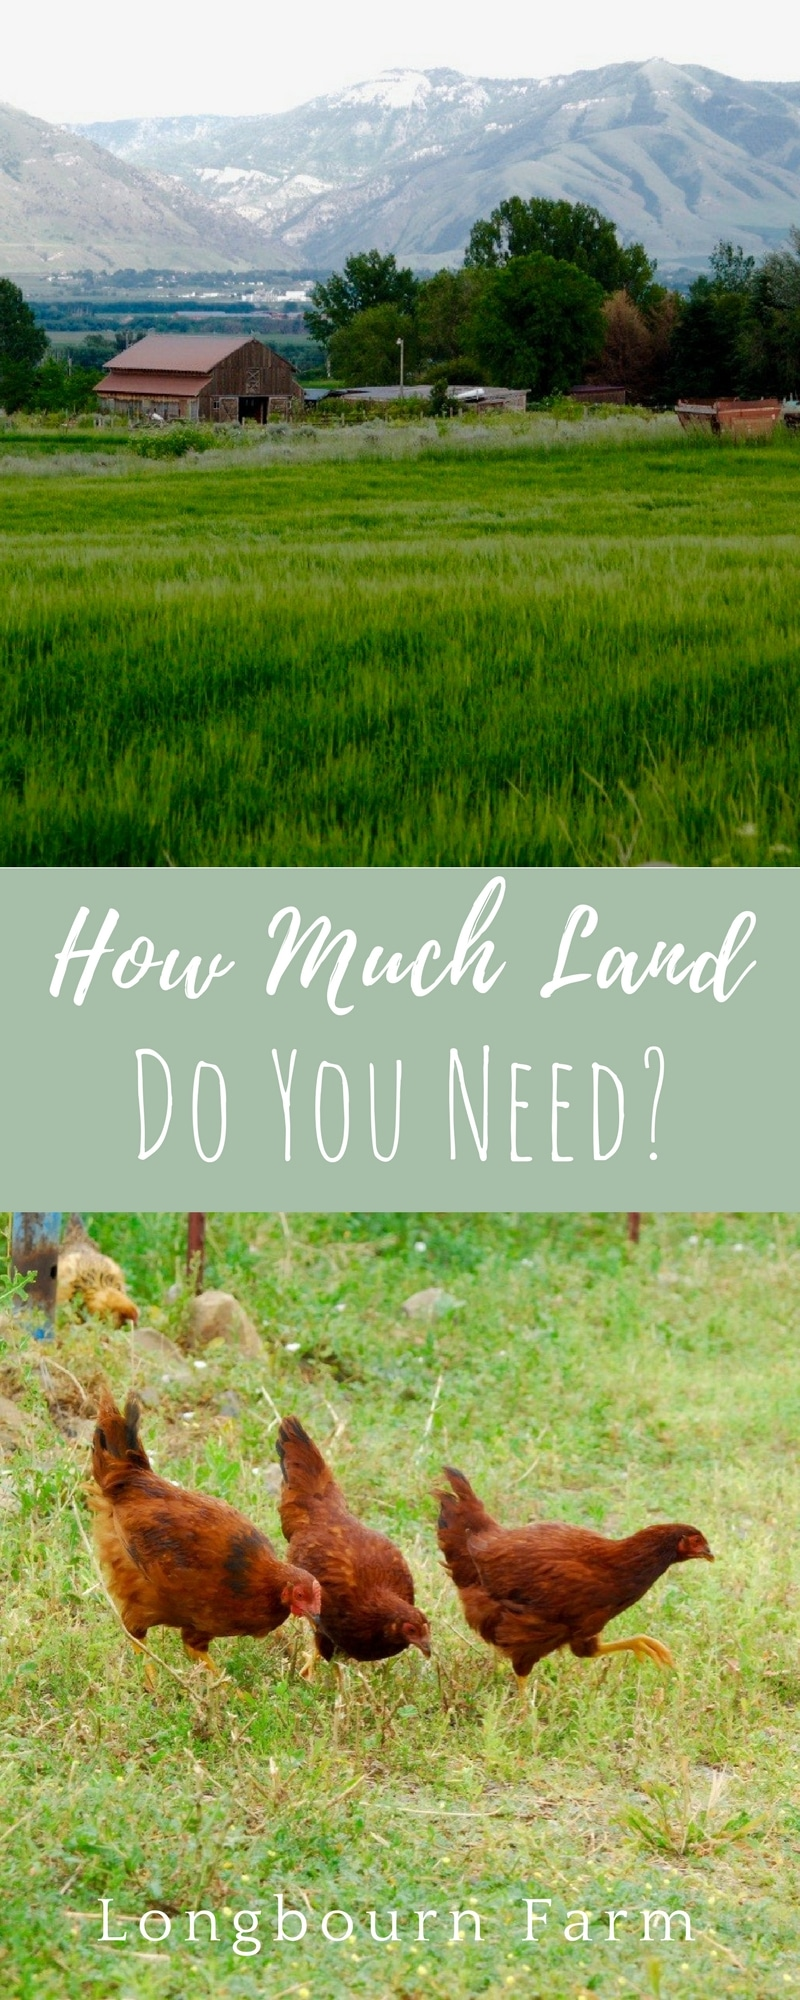 How much land do I need for...A cow? A horse? A goat? A lamb?Chickens? This is a common question people who are interested in having animals ask.